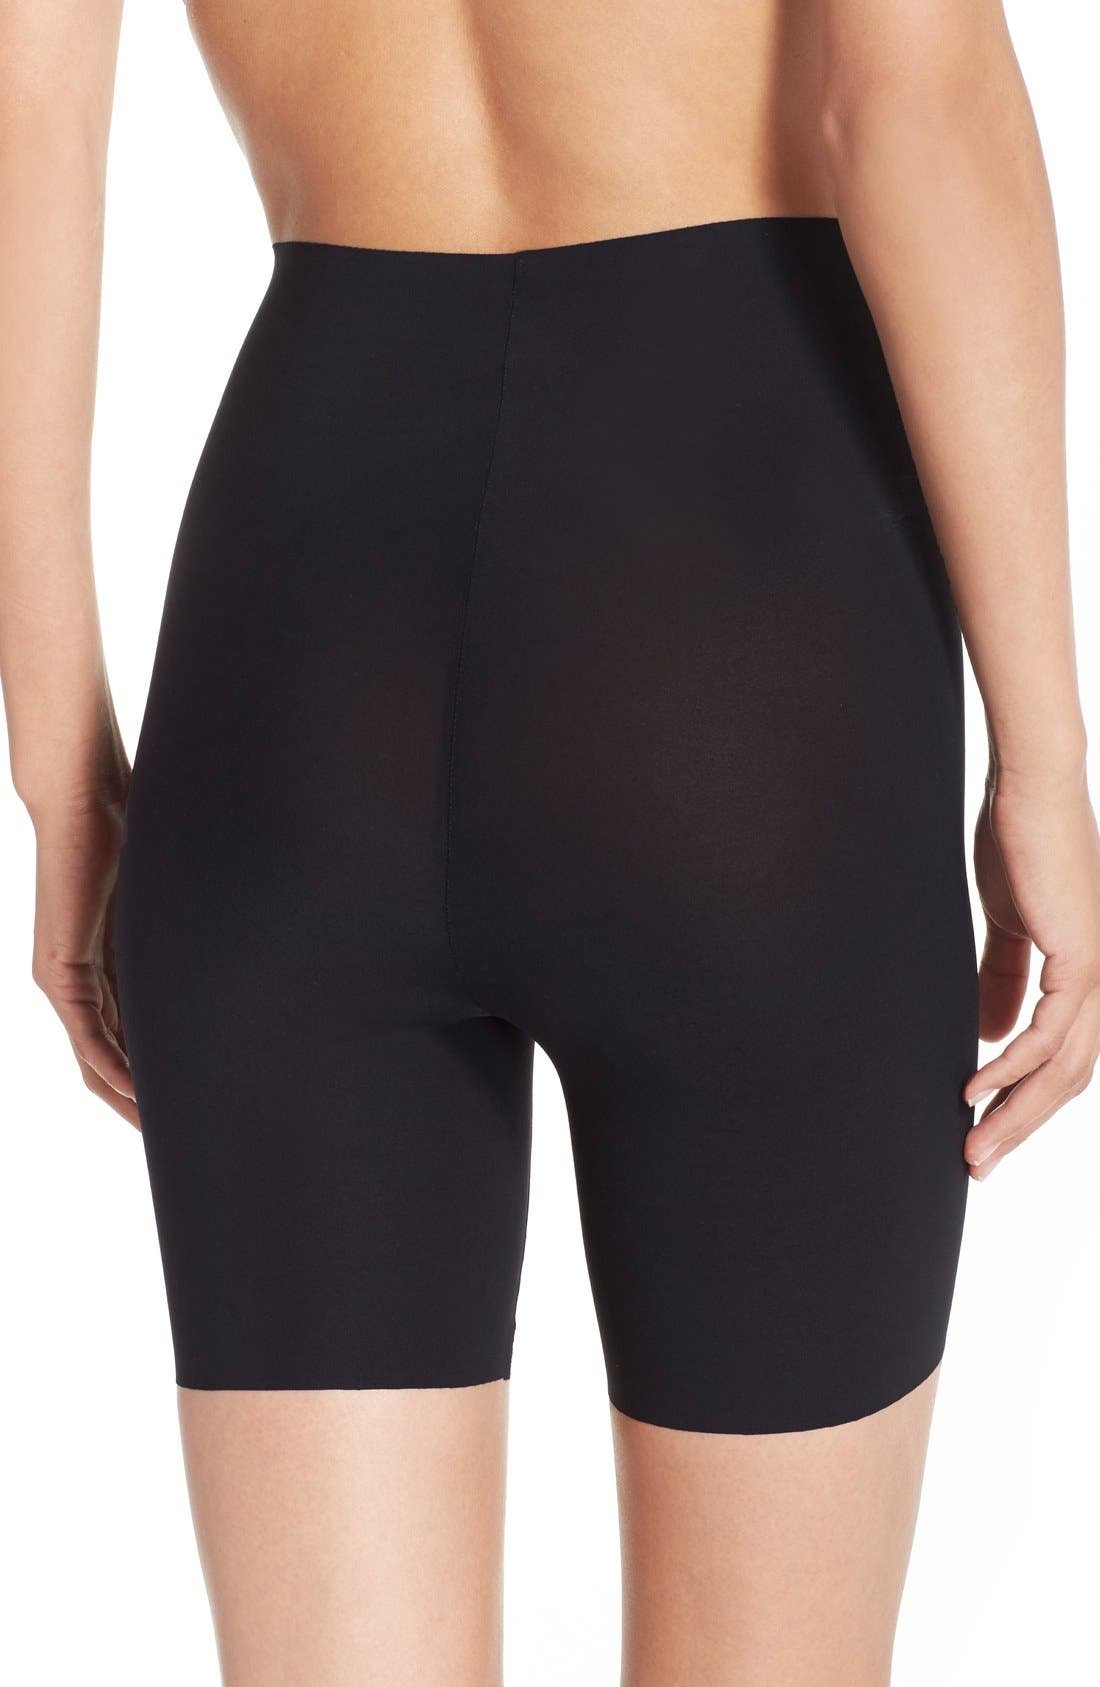 'Control' High Waist Shaping Shorts,                             Alternate thumbnail 2, color,                             BLACK